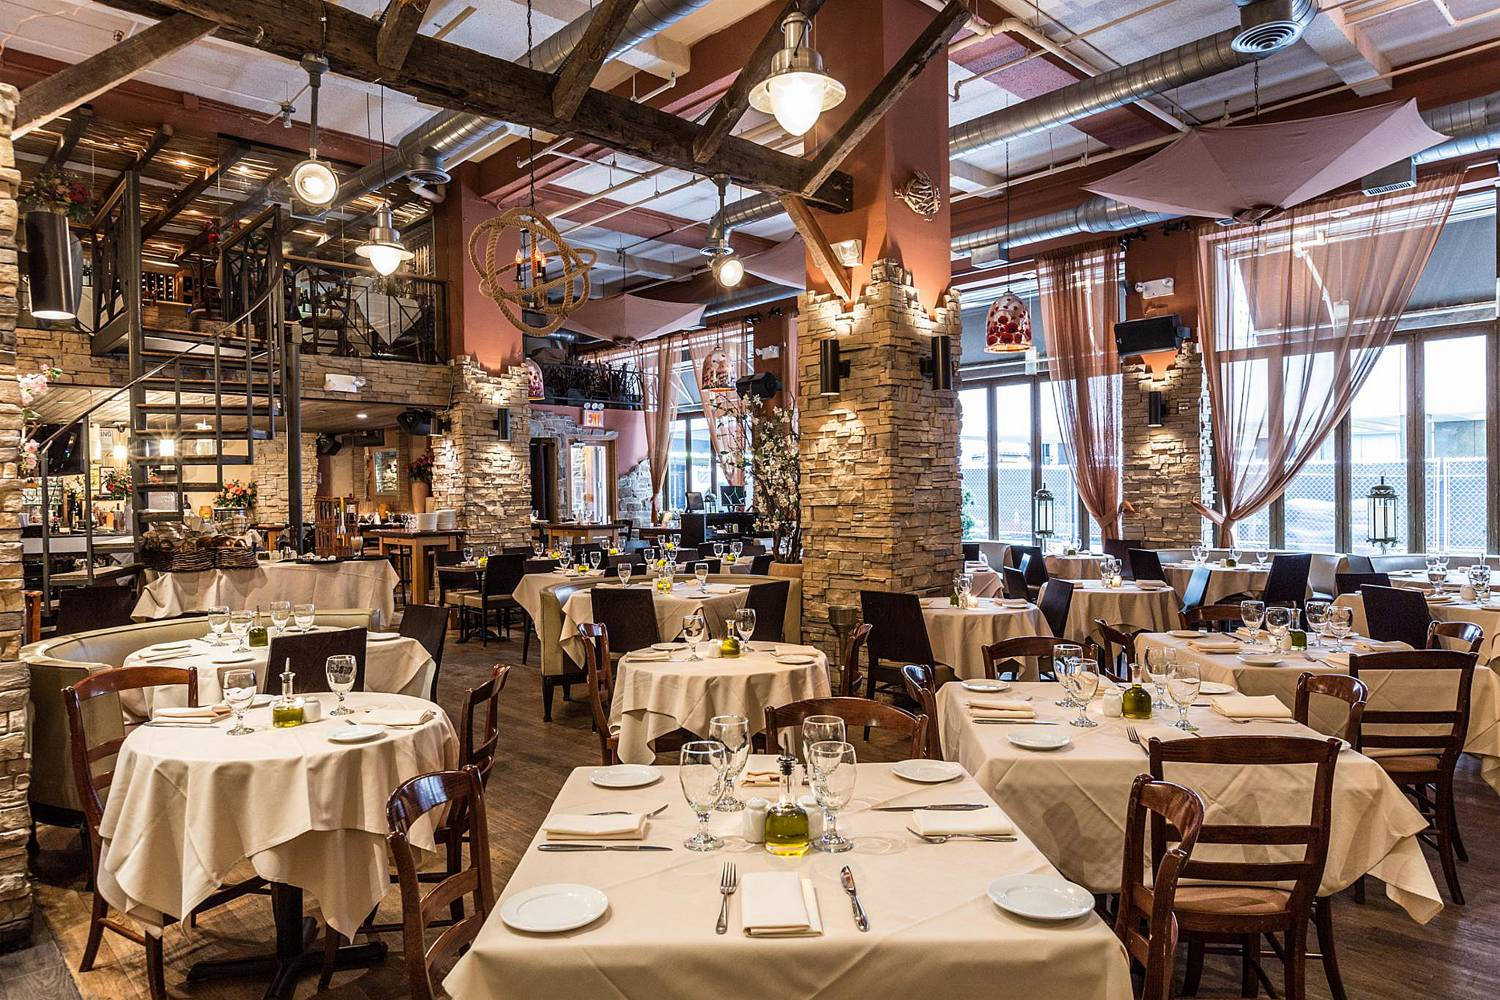 Nyc restaurant week july 25 august 19 new york city for Ammos authentic greek cuisine